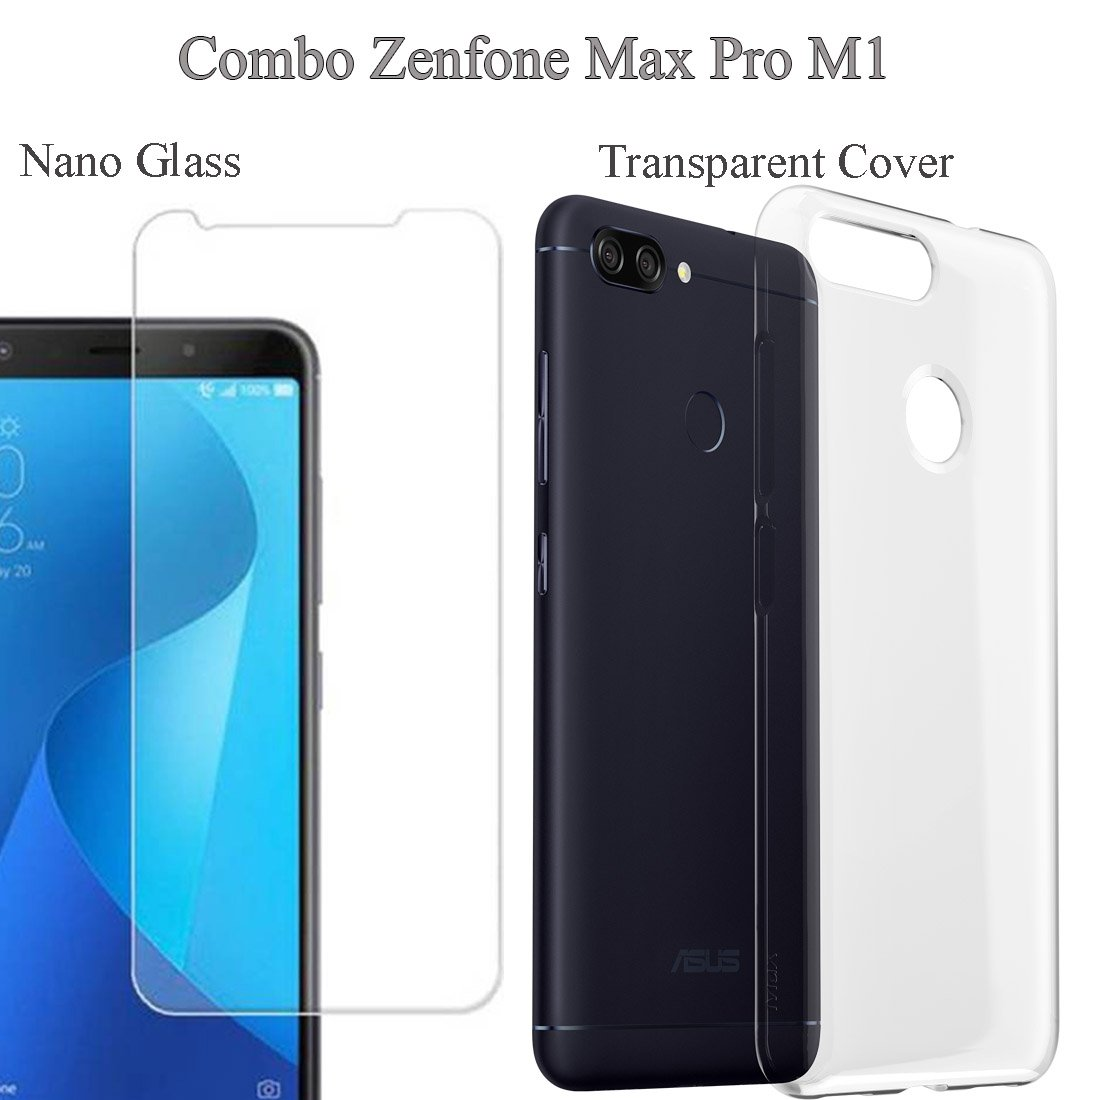 Mowear Back Cover With Tempered Glass For Asus Zenfone Max Pro M1 Softcase Silikon Transparan 2 Transparent Electronics